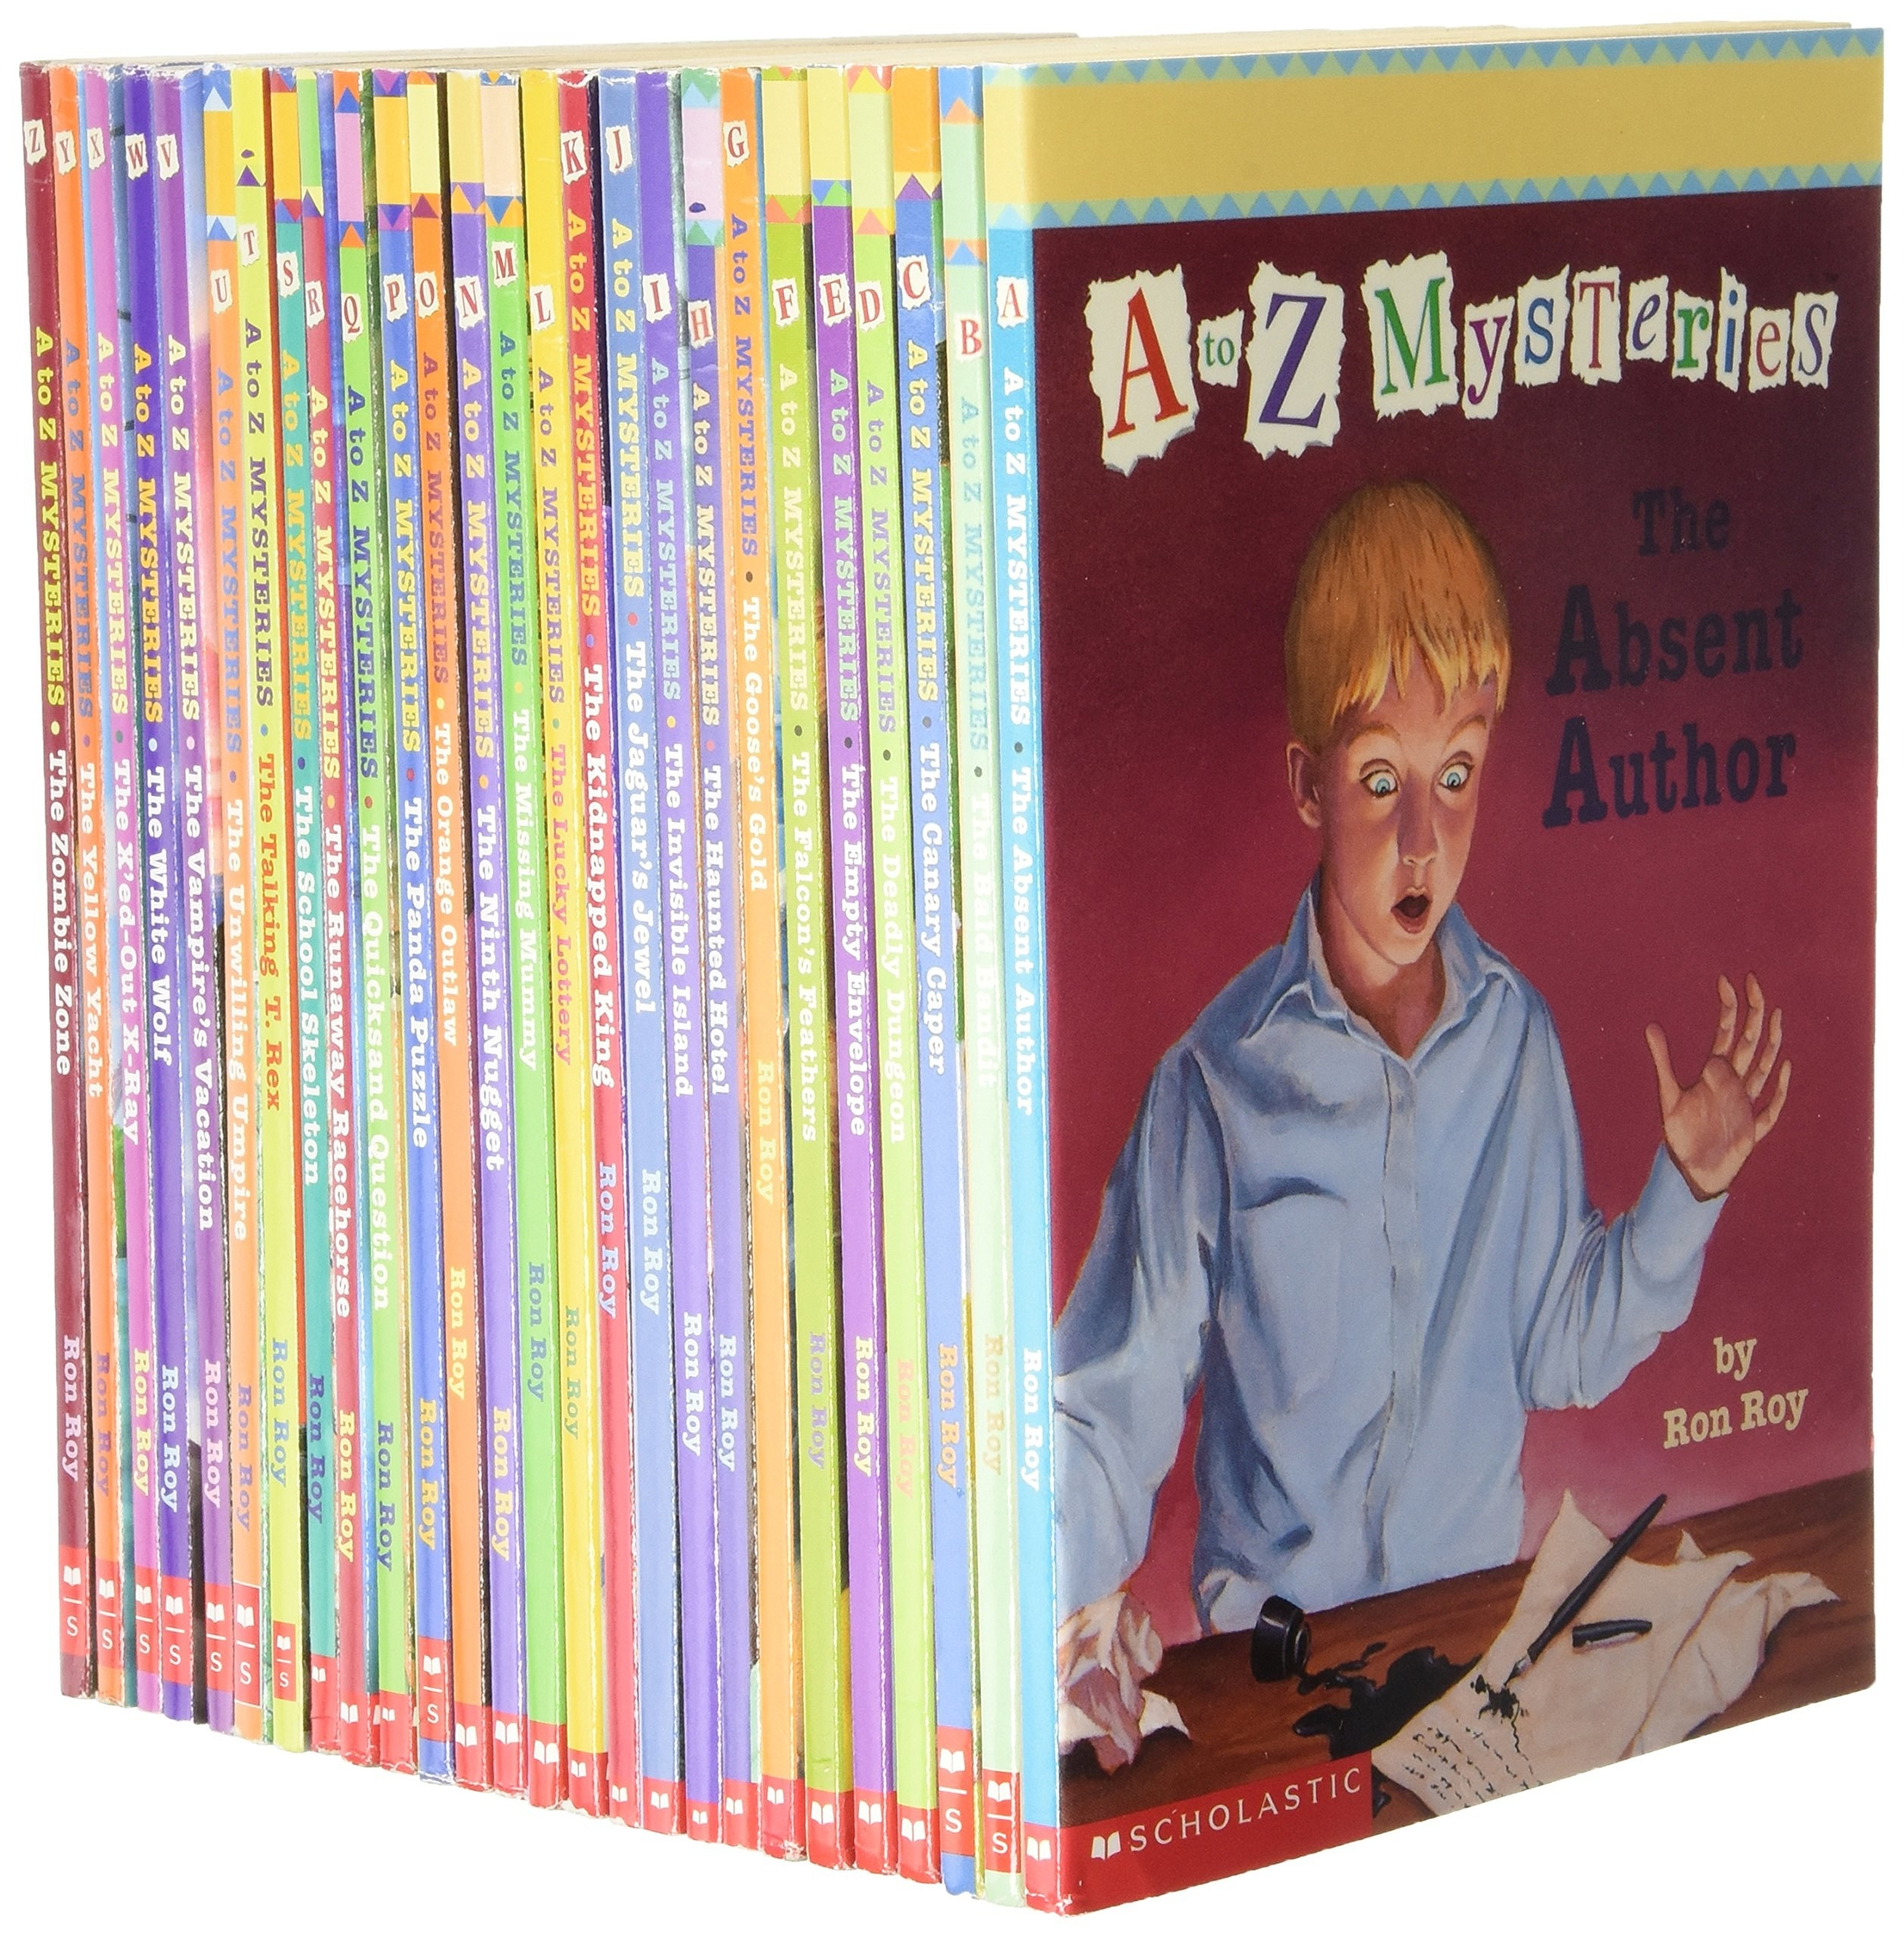 Collection of A-Z mysteries, thin books in a vertical stack